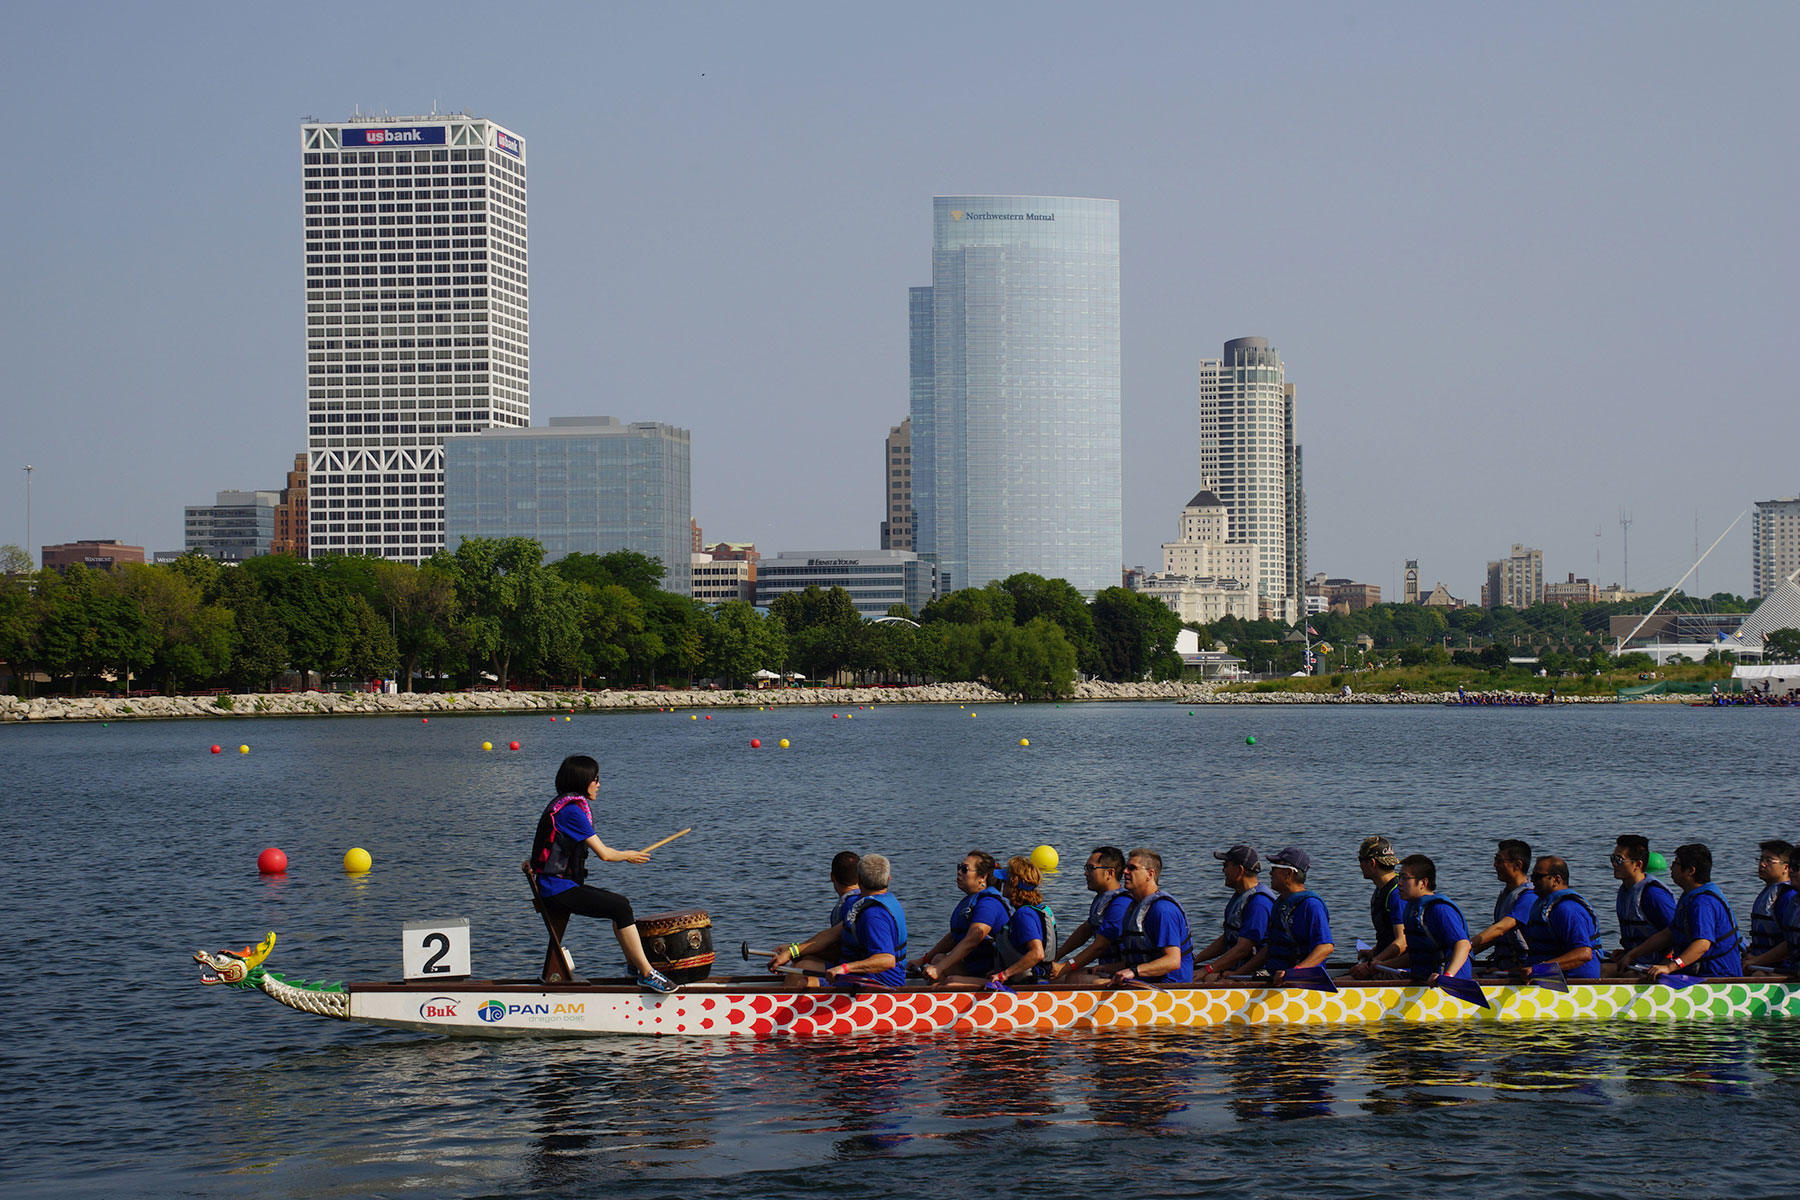 081118_dragonboat_065